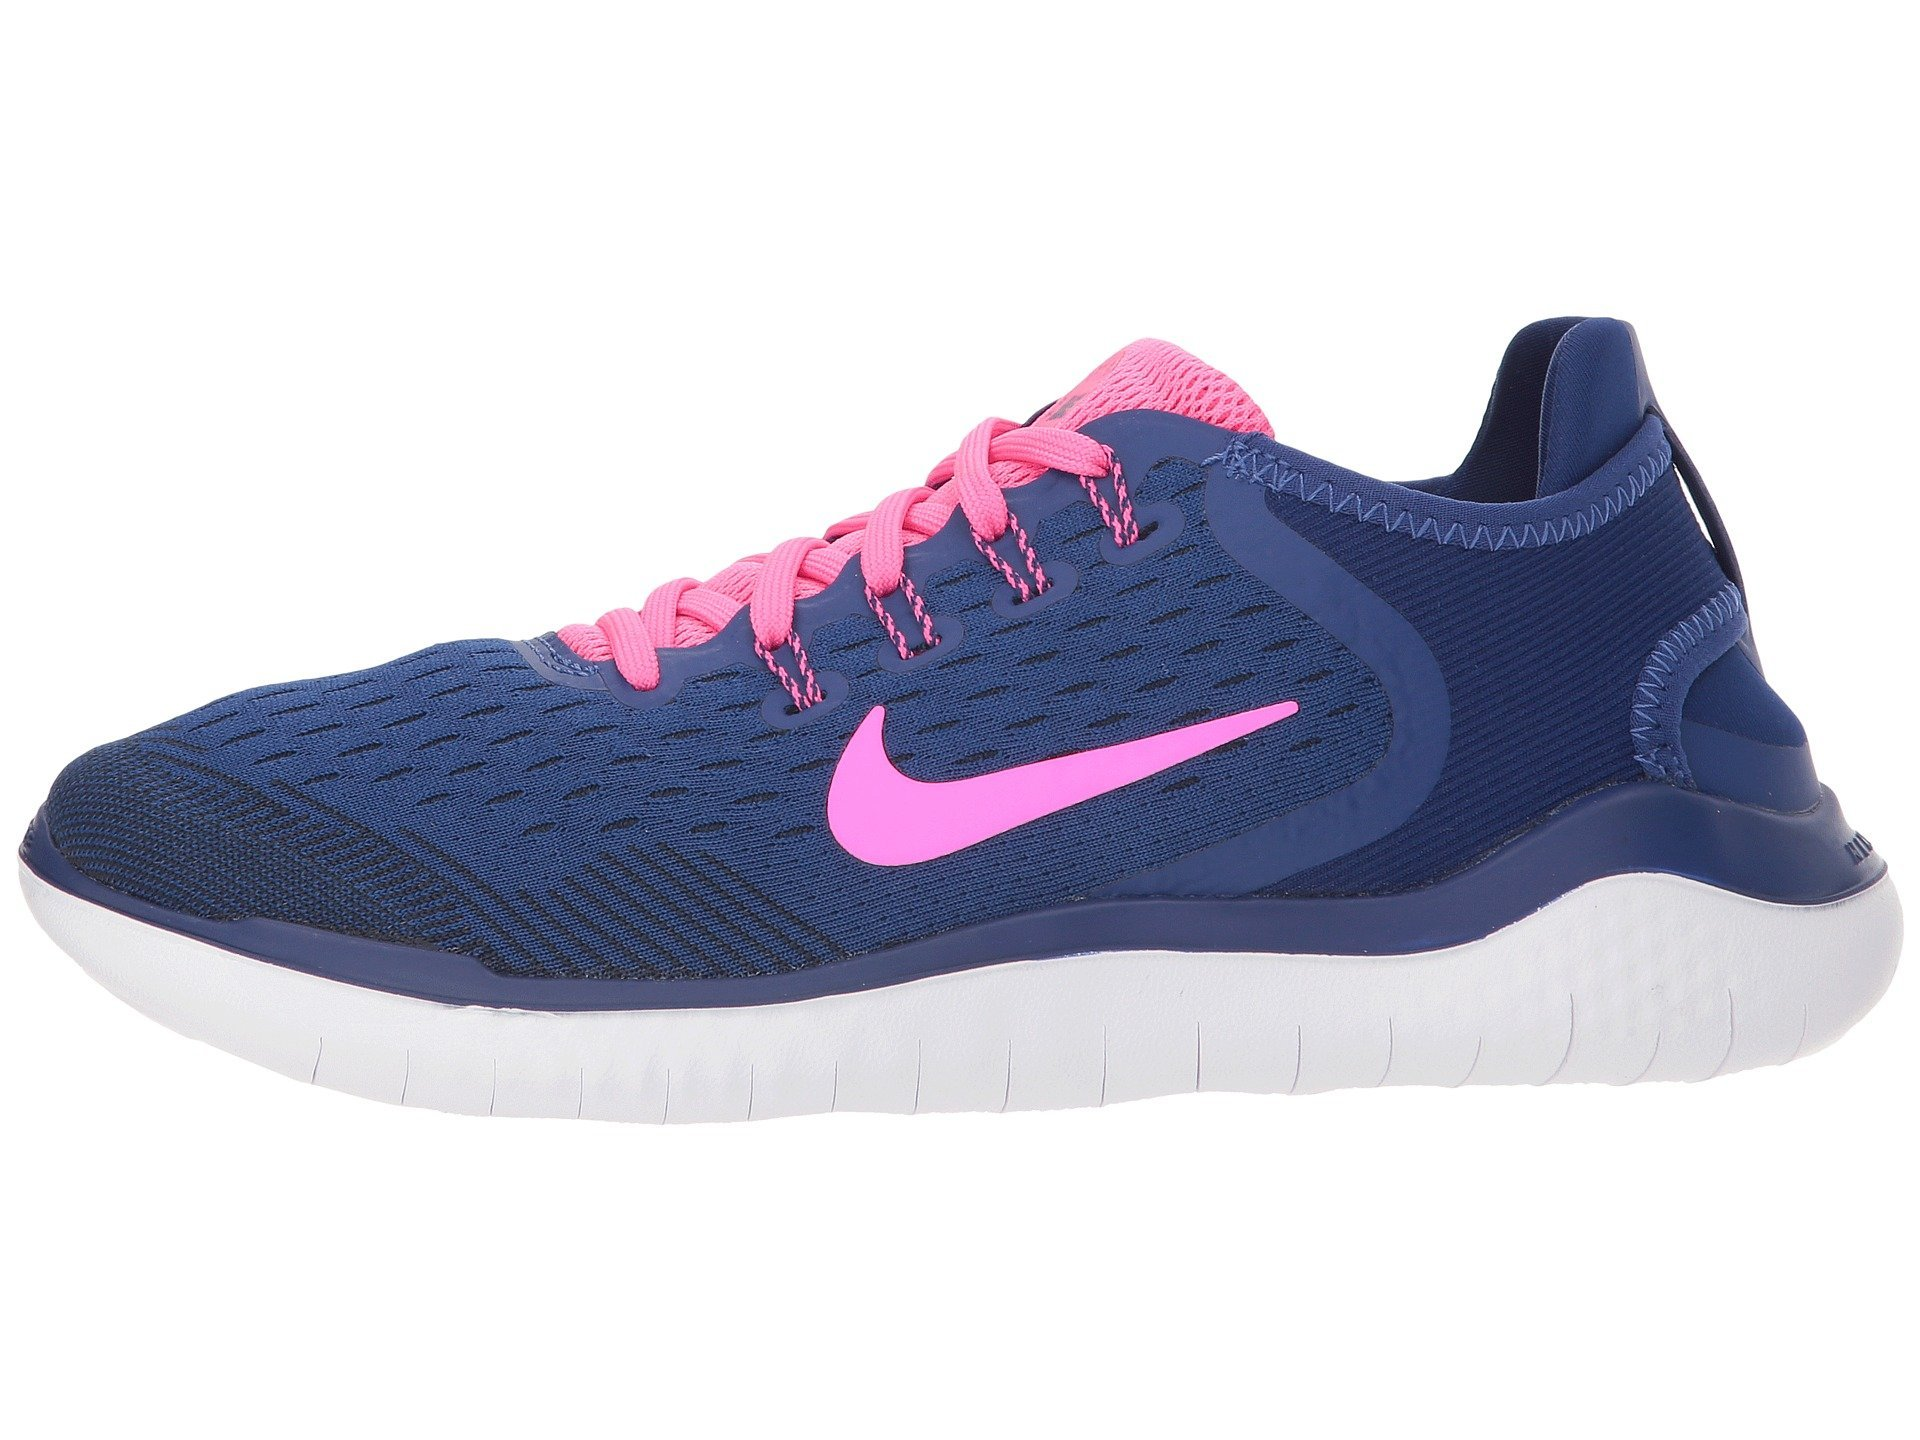 a33742937ca99 Galleon - Nike Women s Free RN 2018 Running Shoe Deep Royal Blue Pink  Blast Obsidian Size 7.5 M US